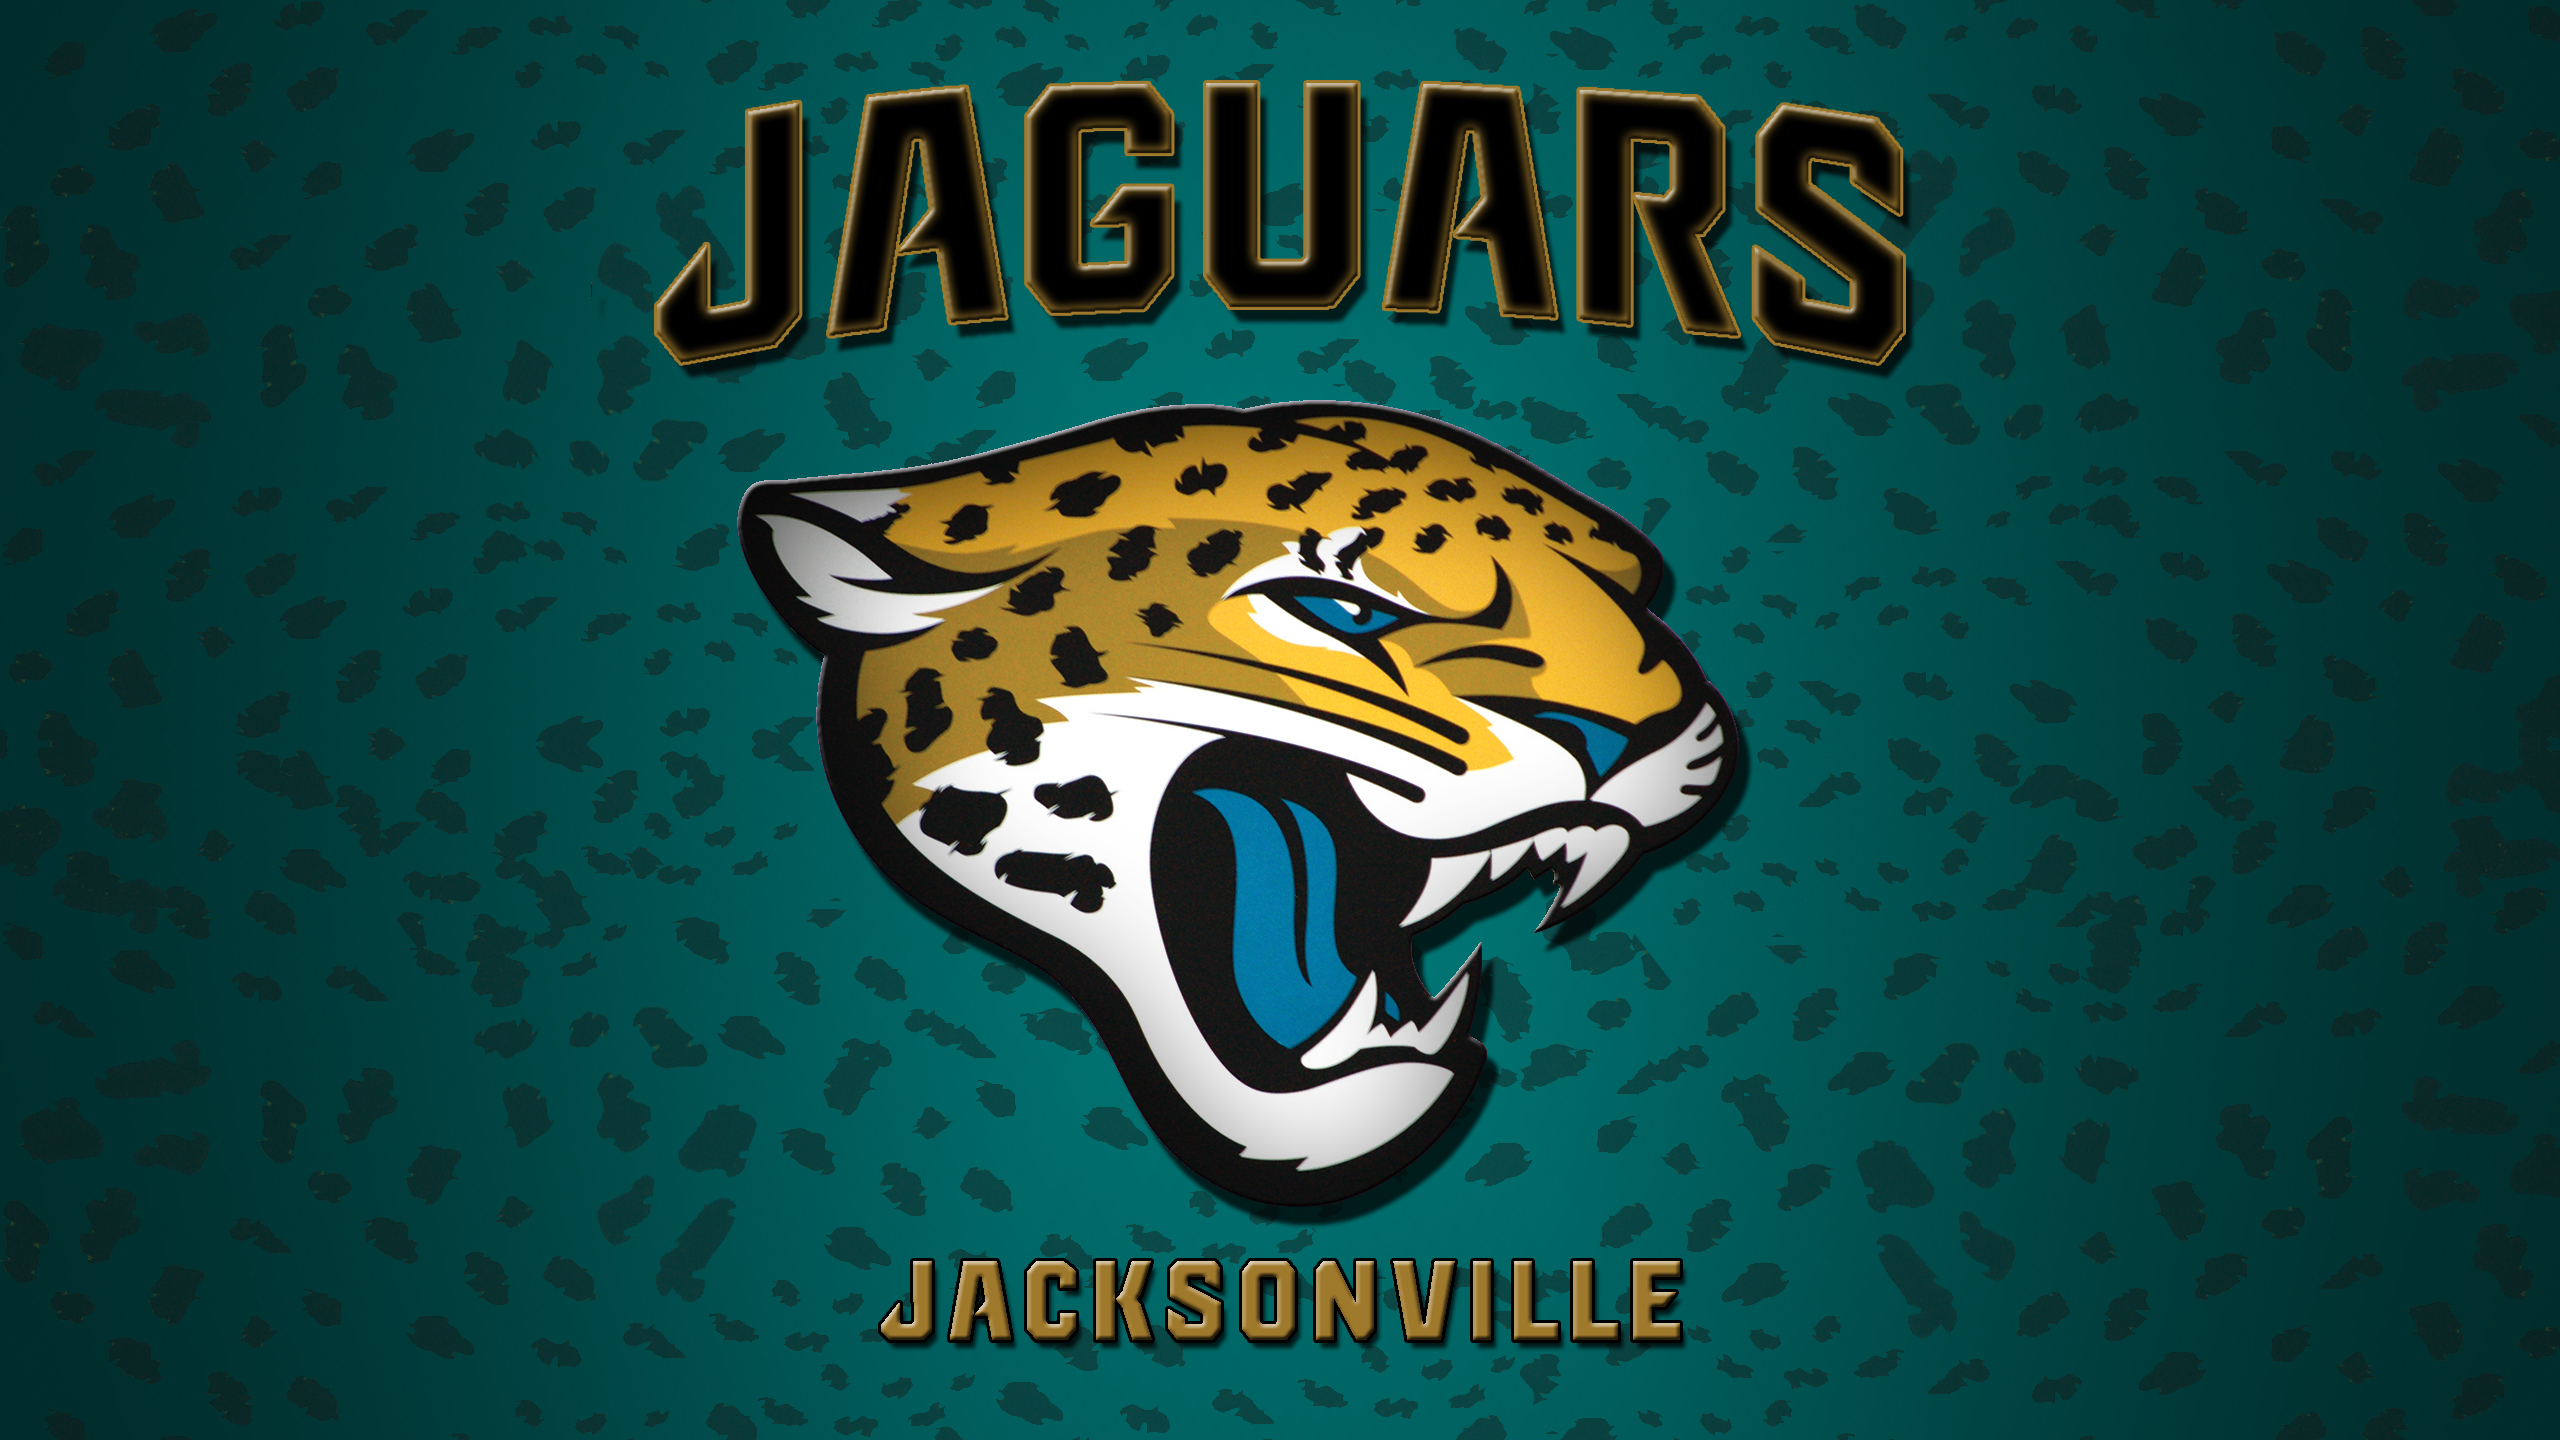 Captivating Jacksonville Jaguars Nfl Football Sports Wallpaper | 2560x1440 | 1178332 |  WallpaperUP